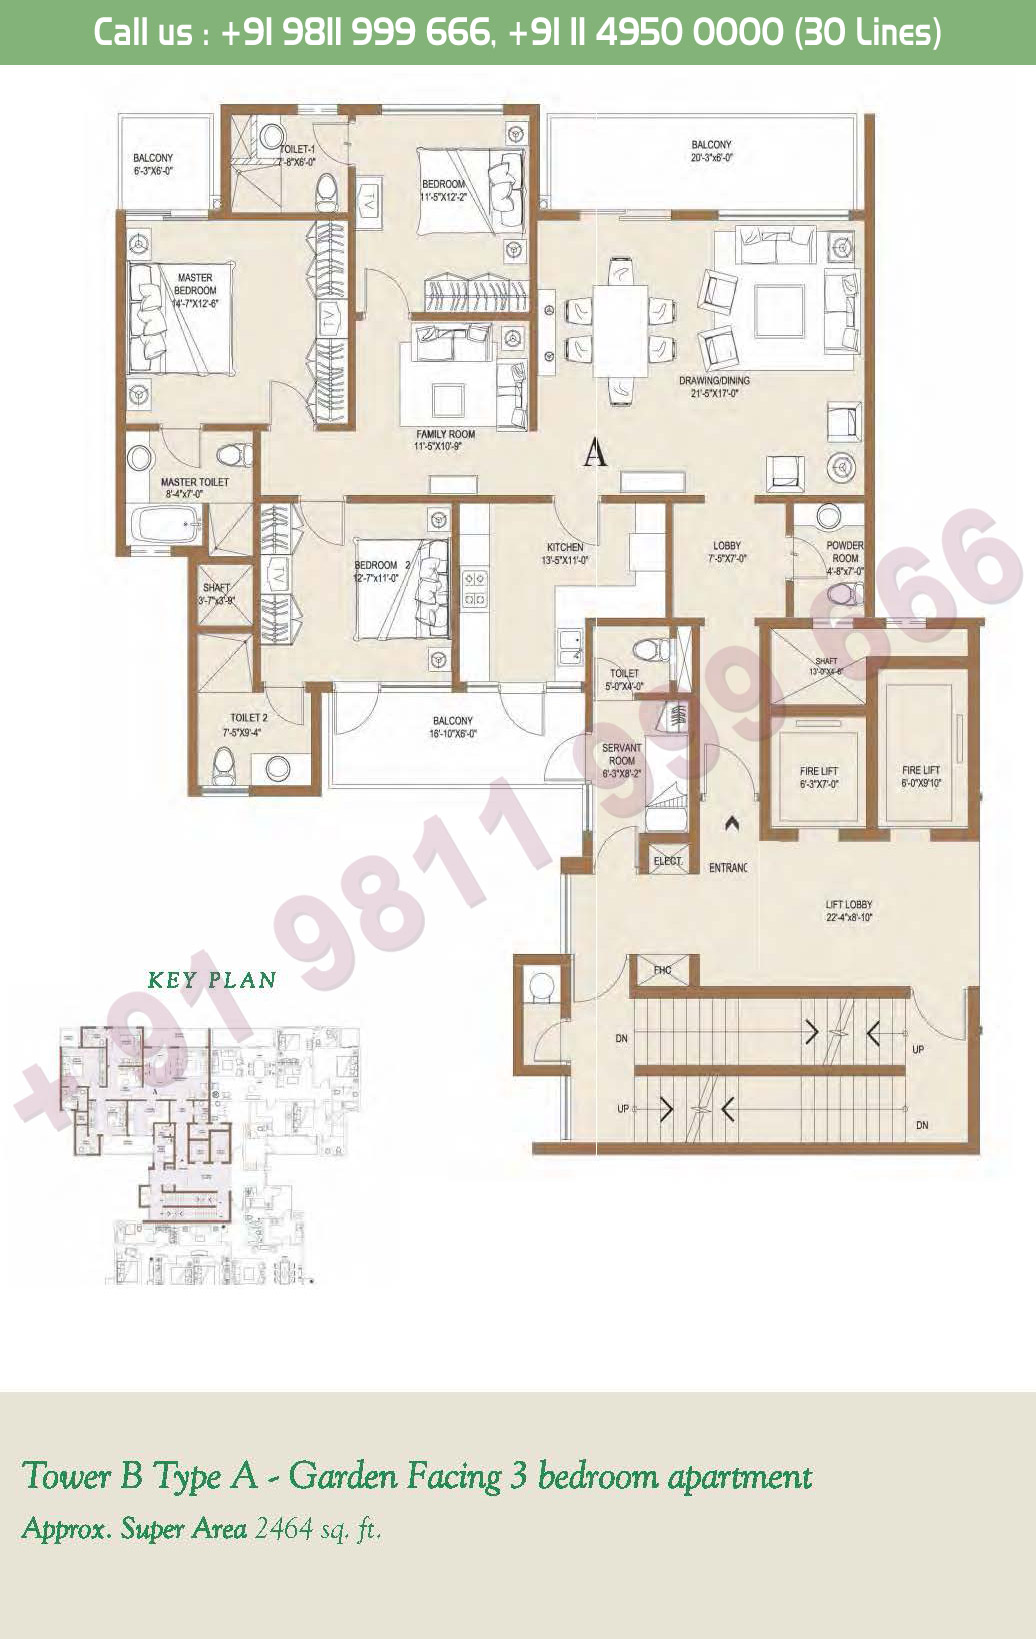 Tower - B, Type - A, 3BHK: 2464 Sq. Ft